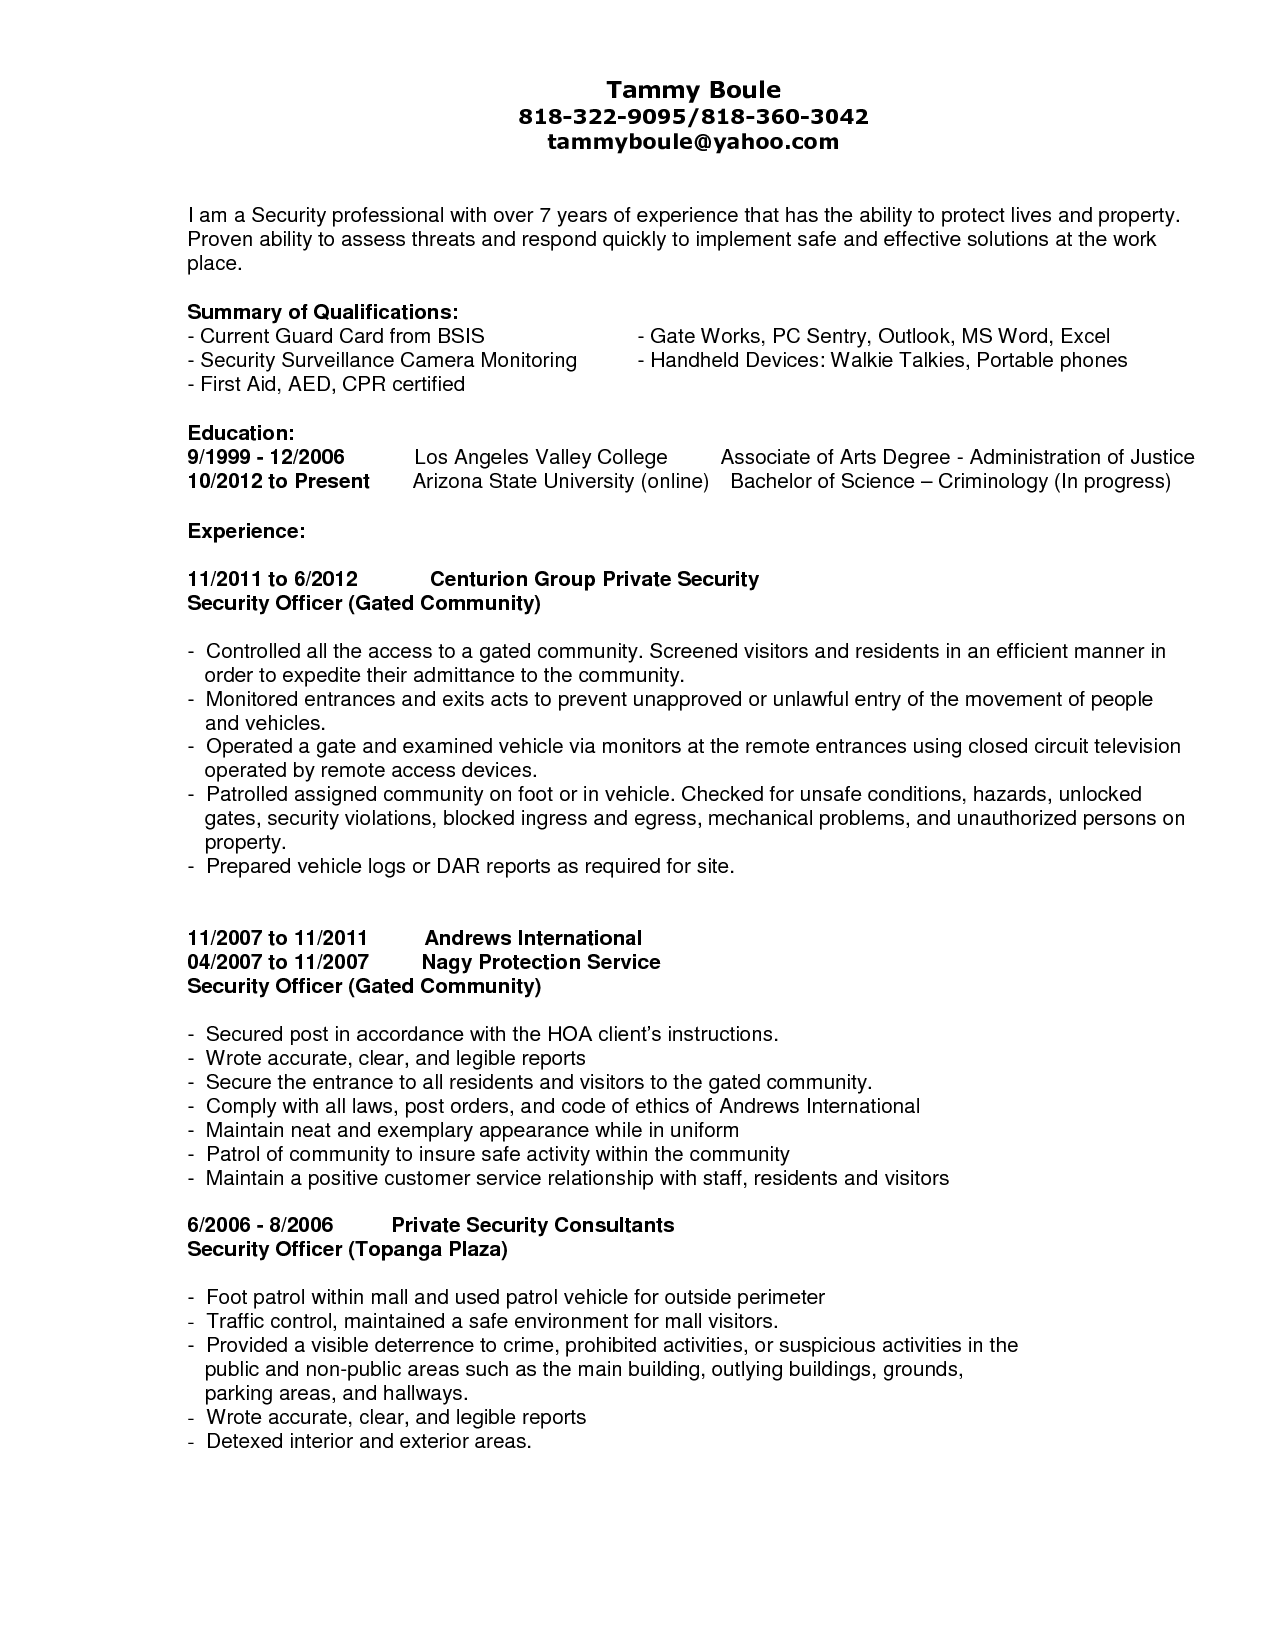 resume Sample Of Resume For Security Guard guard security officer resume ideas httpwww jobresume website website